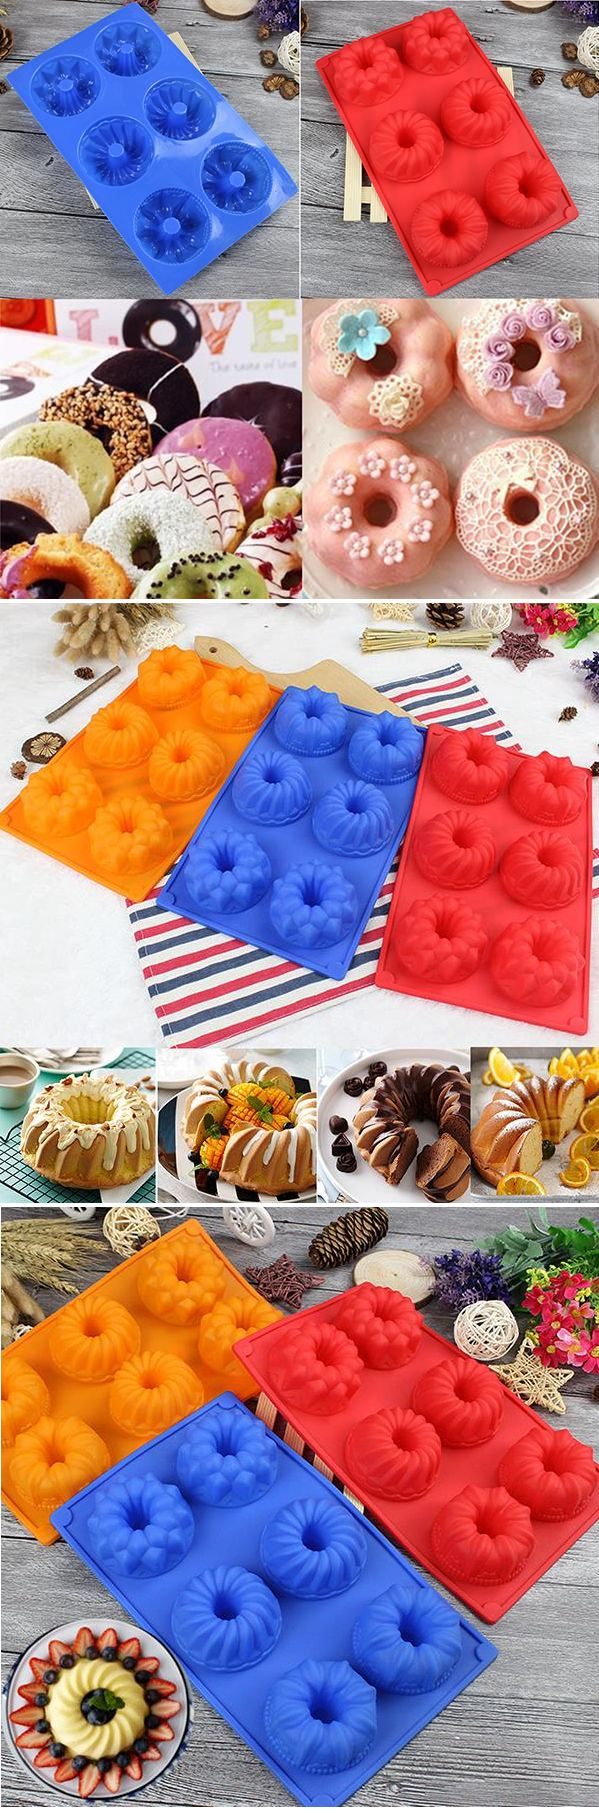 US$4.89 Silicone Cupcake Mold DIY Muffin Chocolate Cake Candy Cookie Baking Mold Pan Tools